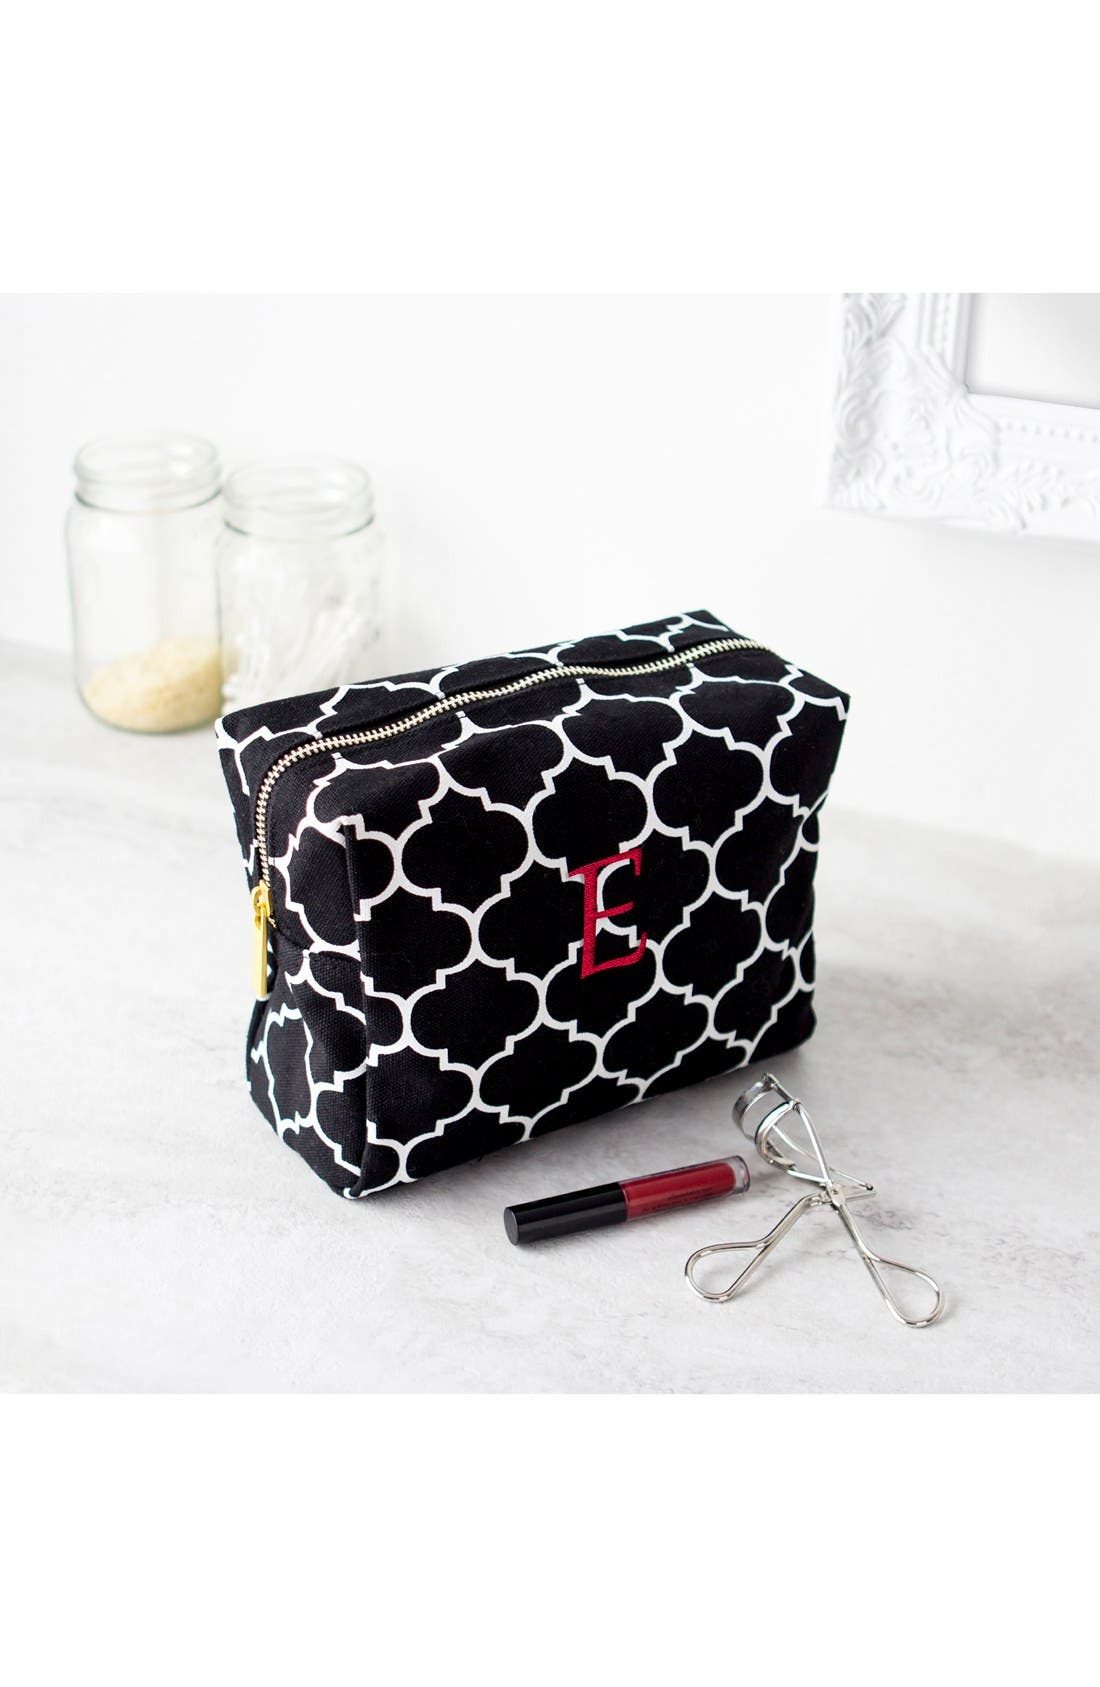 Monogram Cosmetics Bag,                             Alternate thumbnail 5, color,                             BLACK